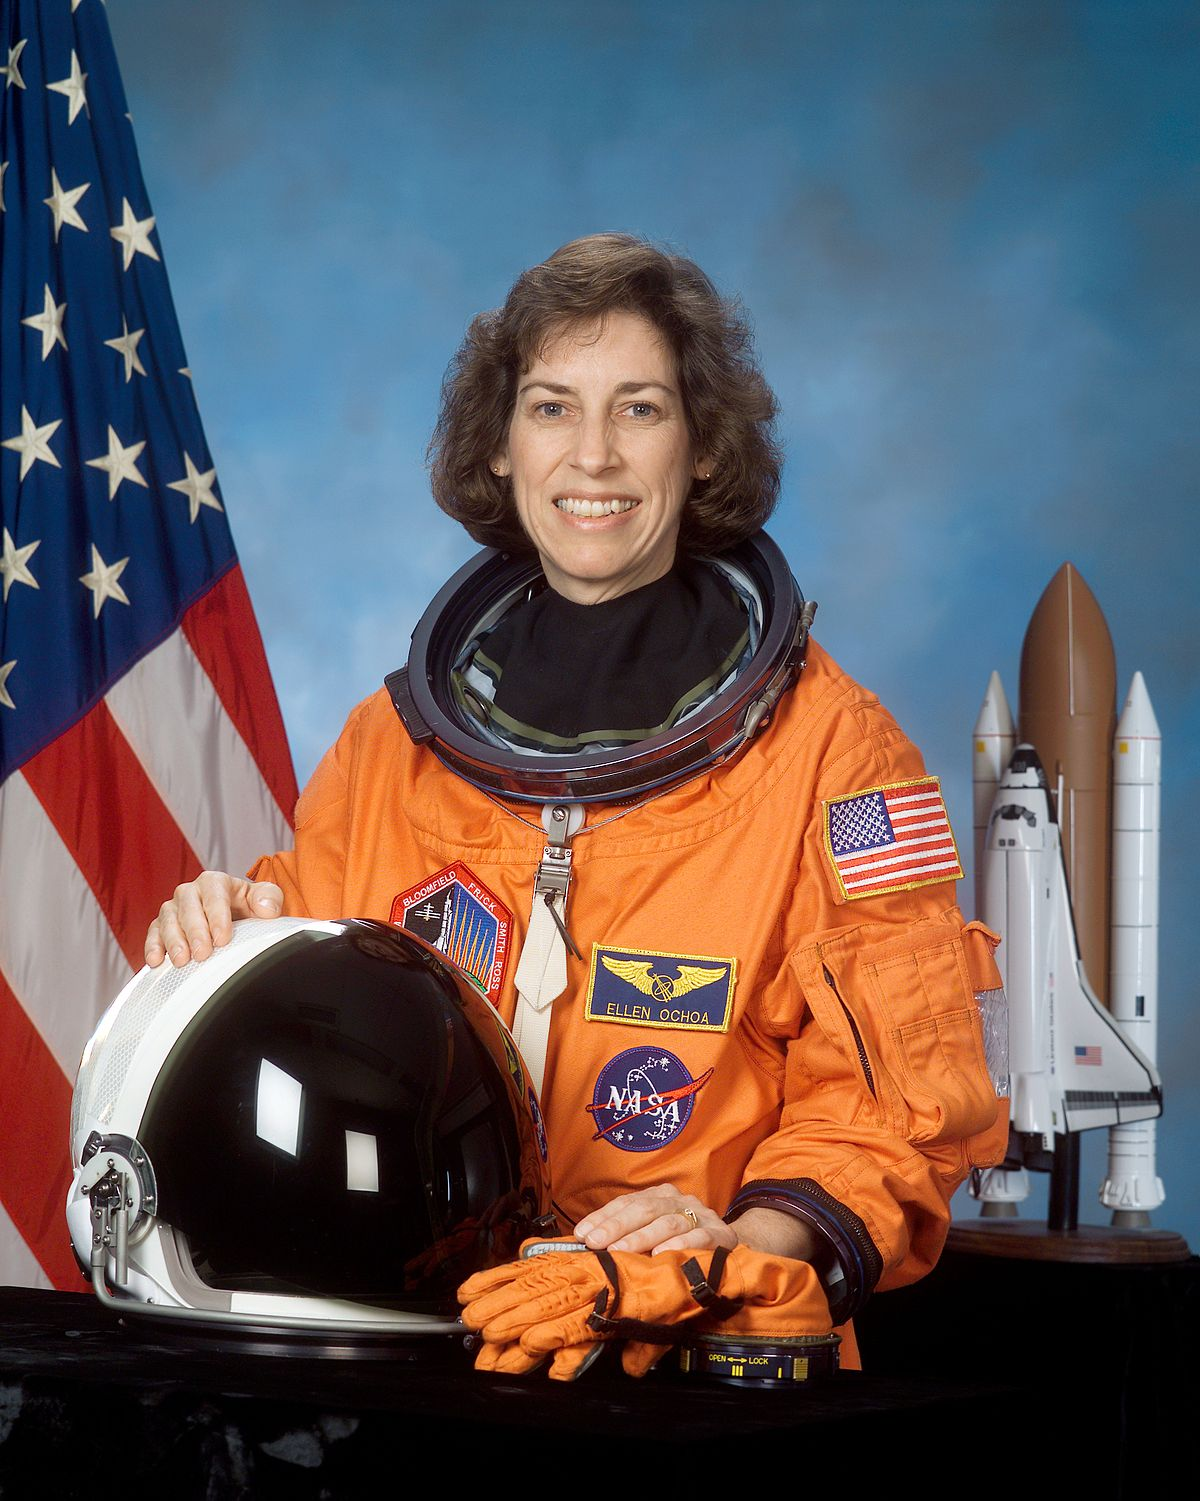 Ellen Ochoa famous female engineer